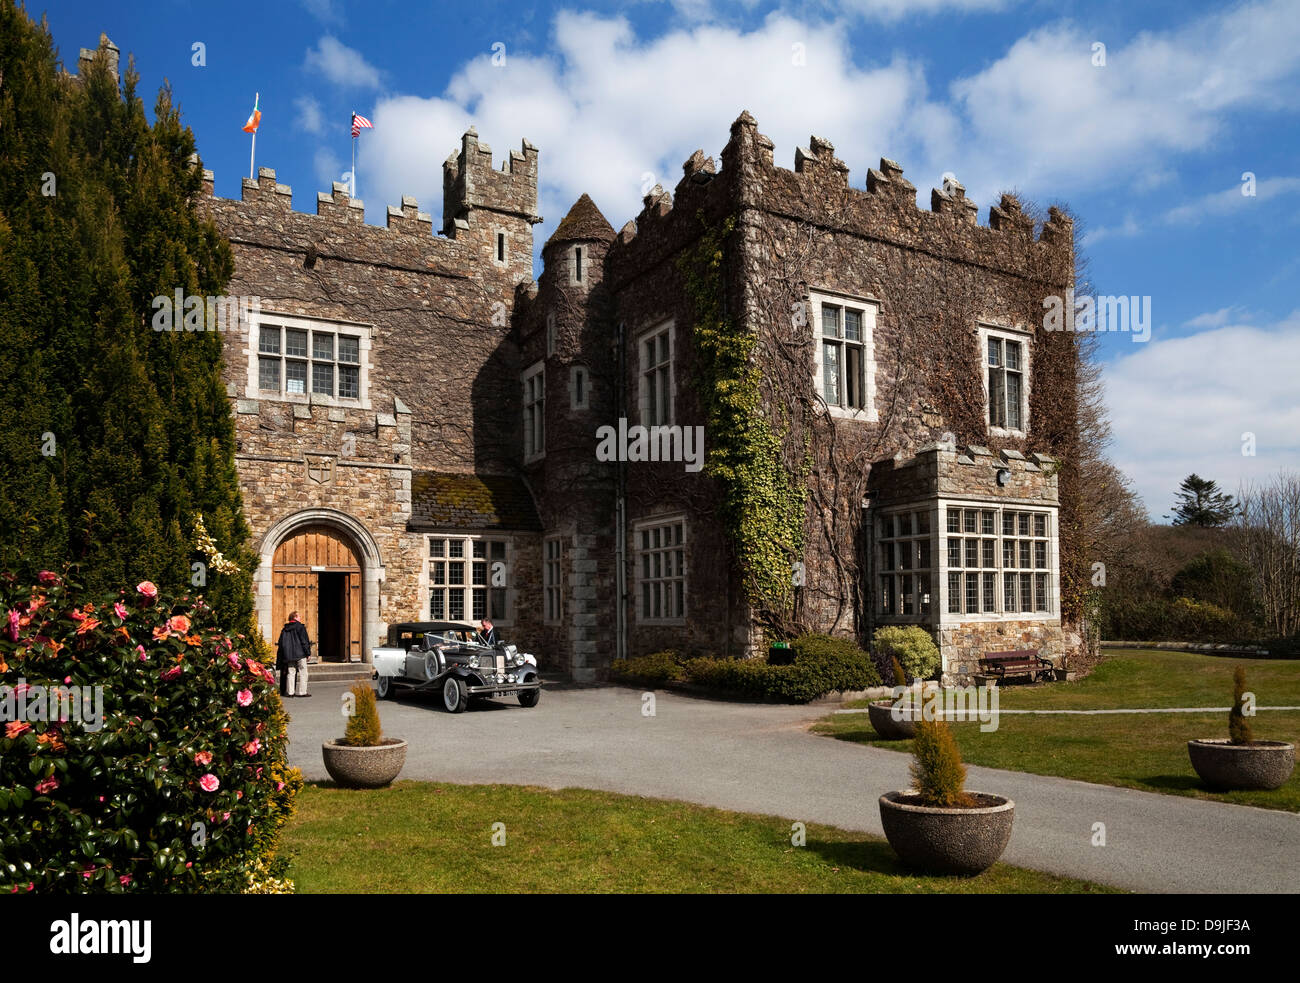 Waterford Castle built in the 15th Century, (now a hotel), On an Island in the River Suir Near Waterford City, Ireland Stock Photo